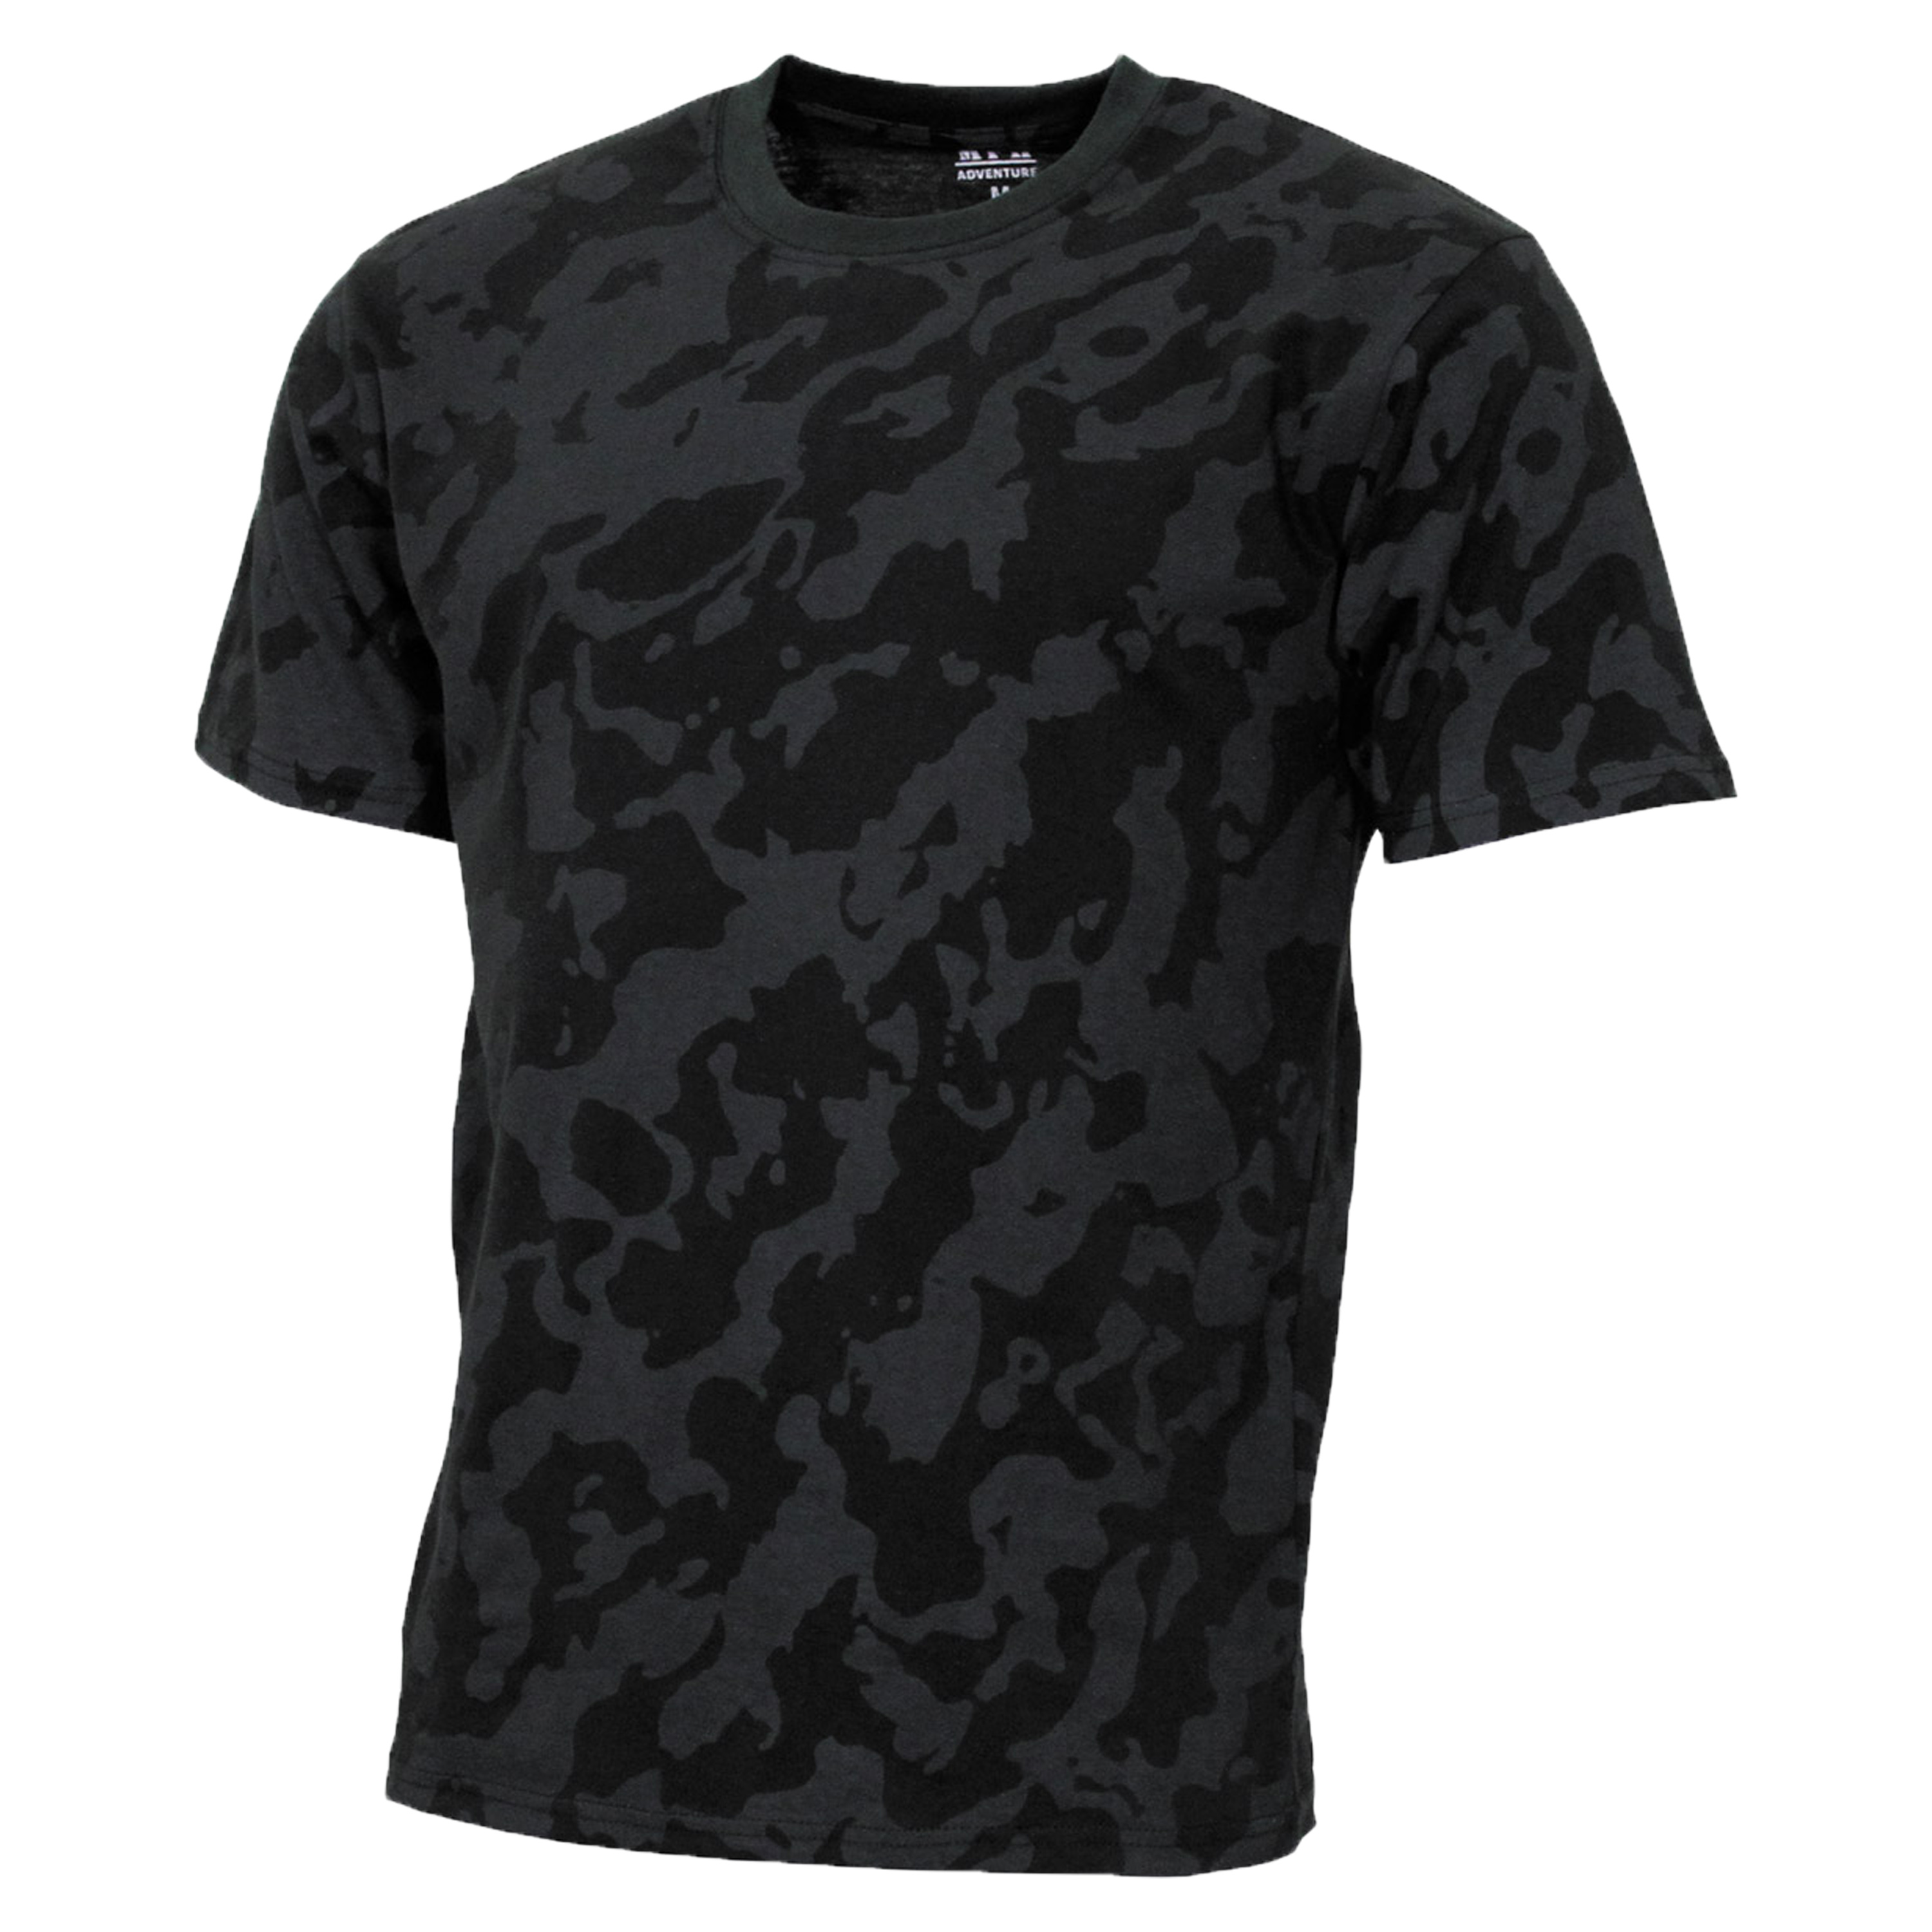 MFH T-Shirt US Streetstyle night camo